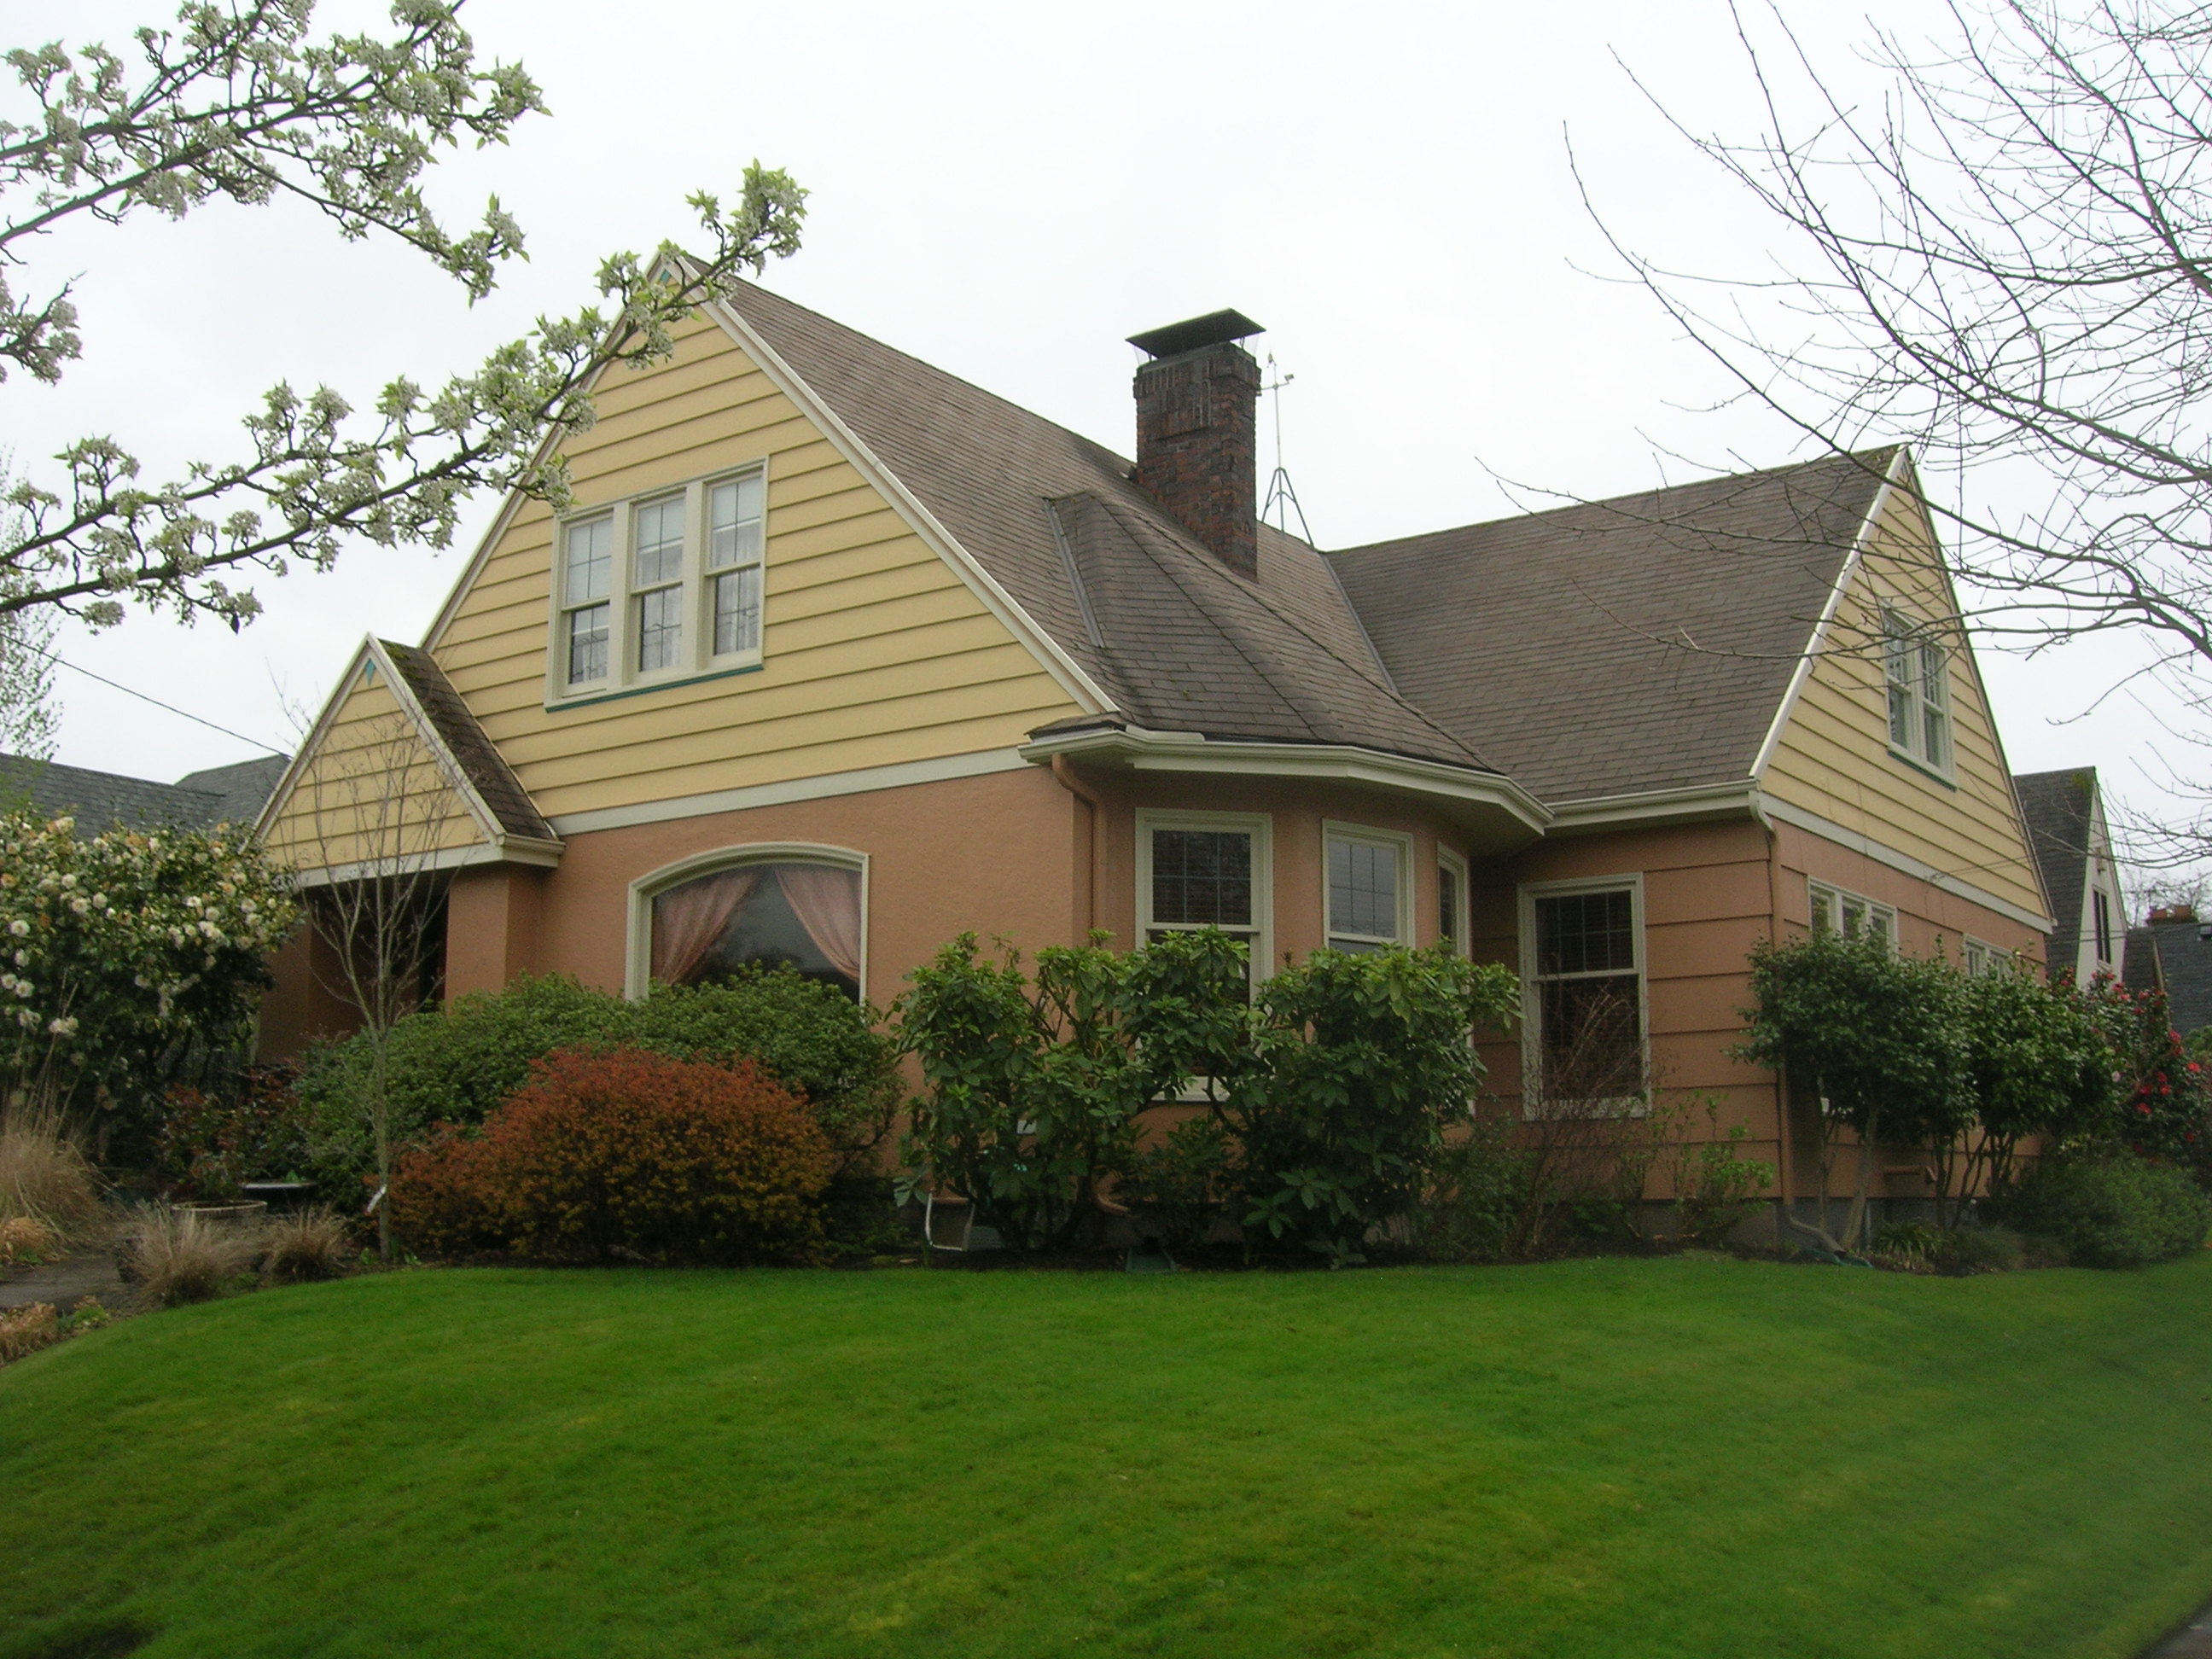 House painters portland interior painting contractors cascade cascade painting restoration for Exterior painting portland oregon